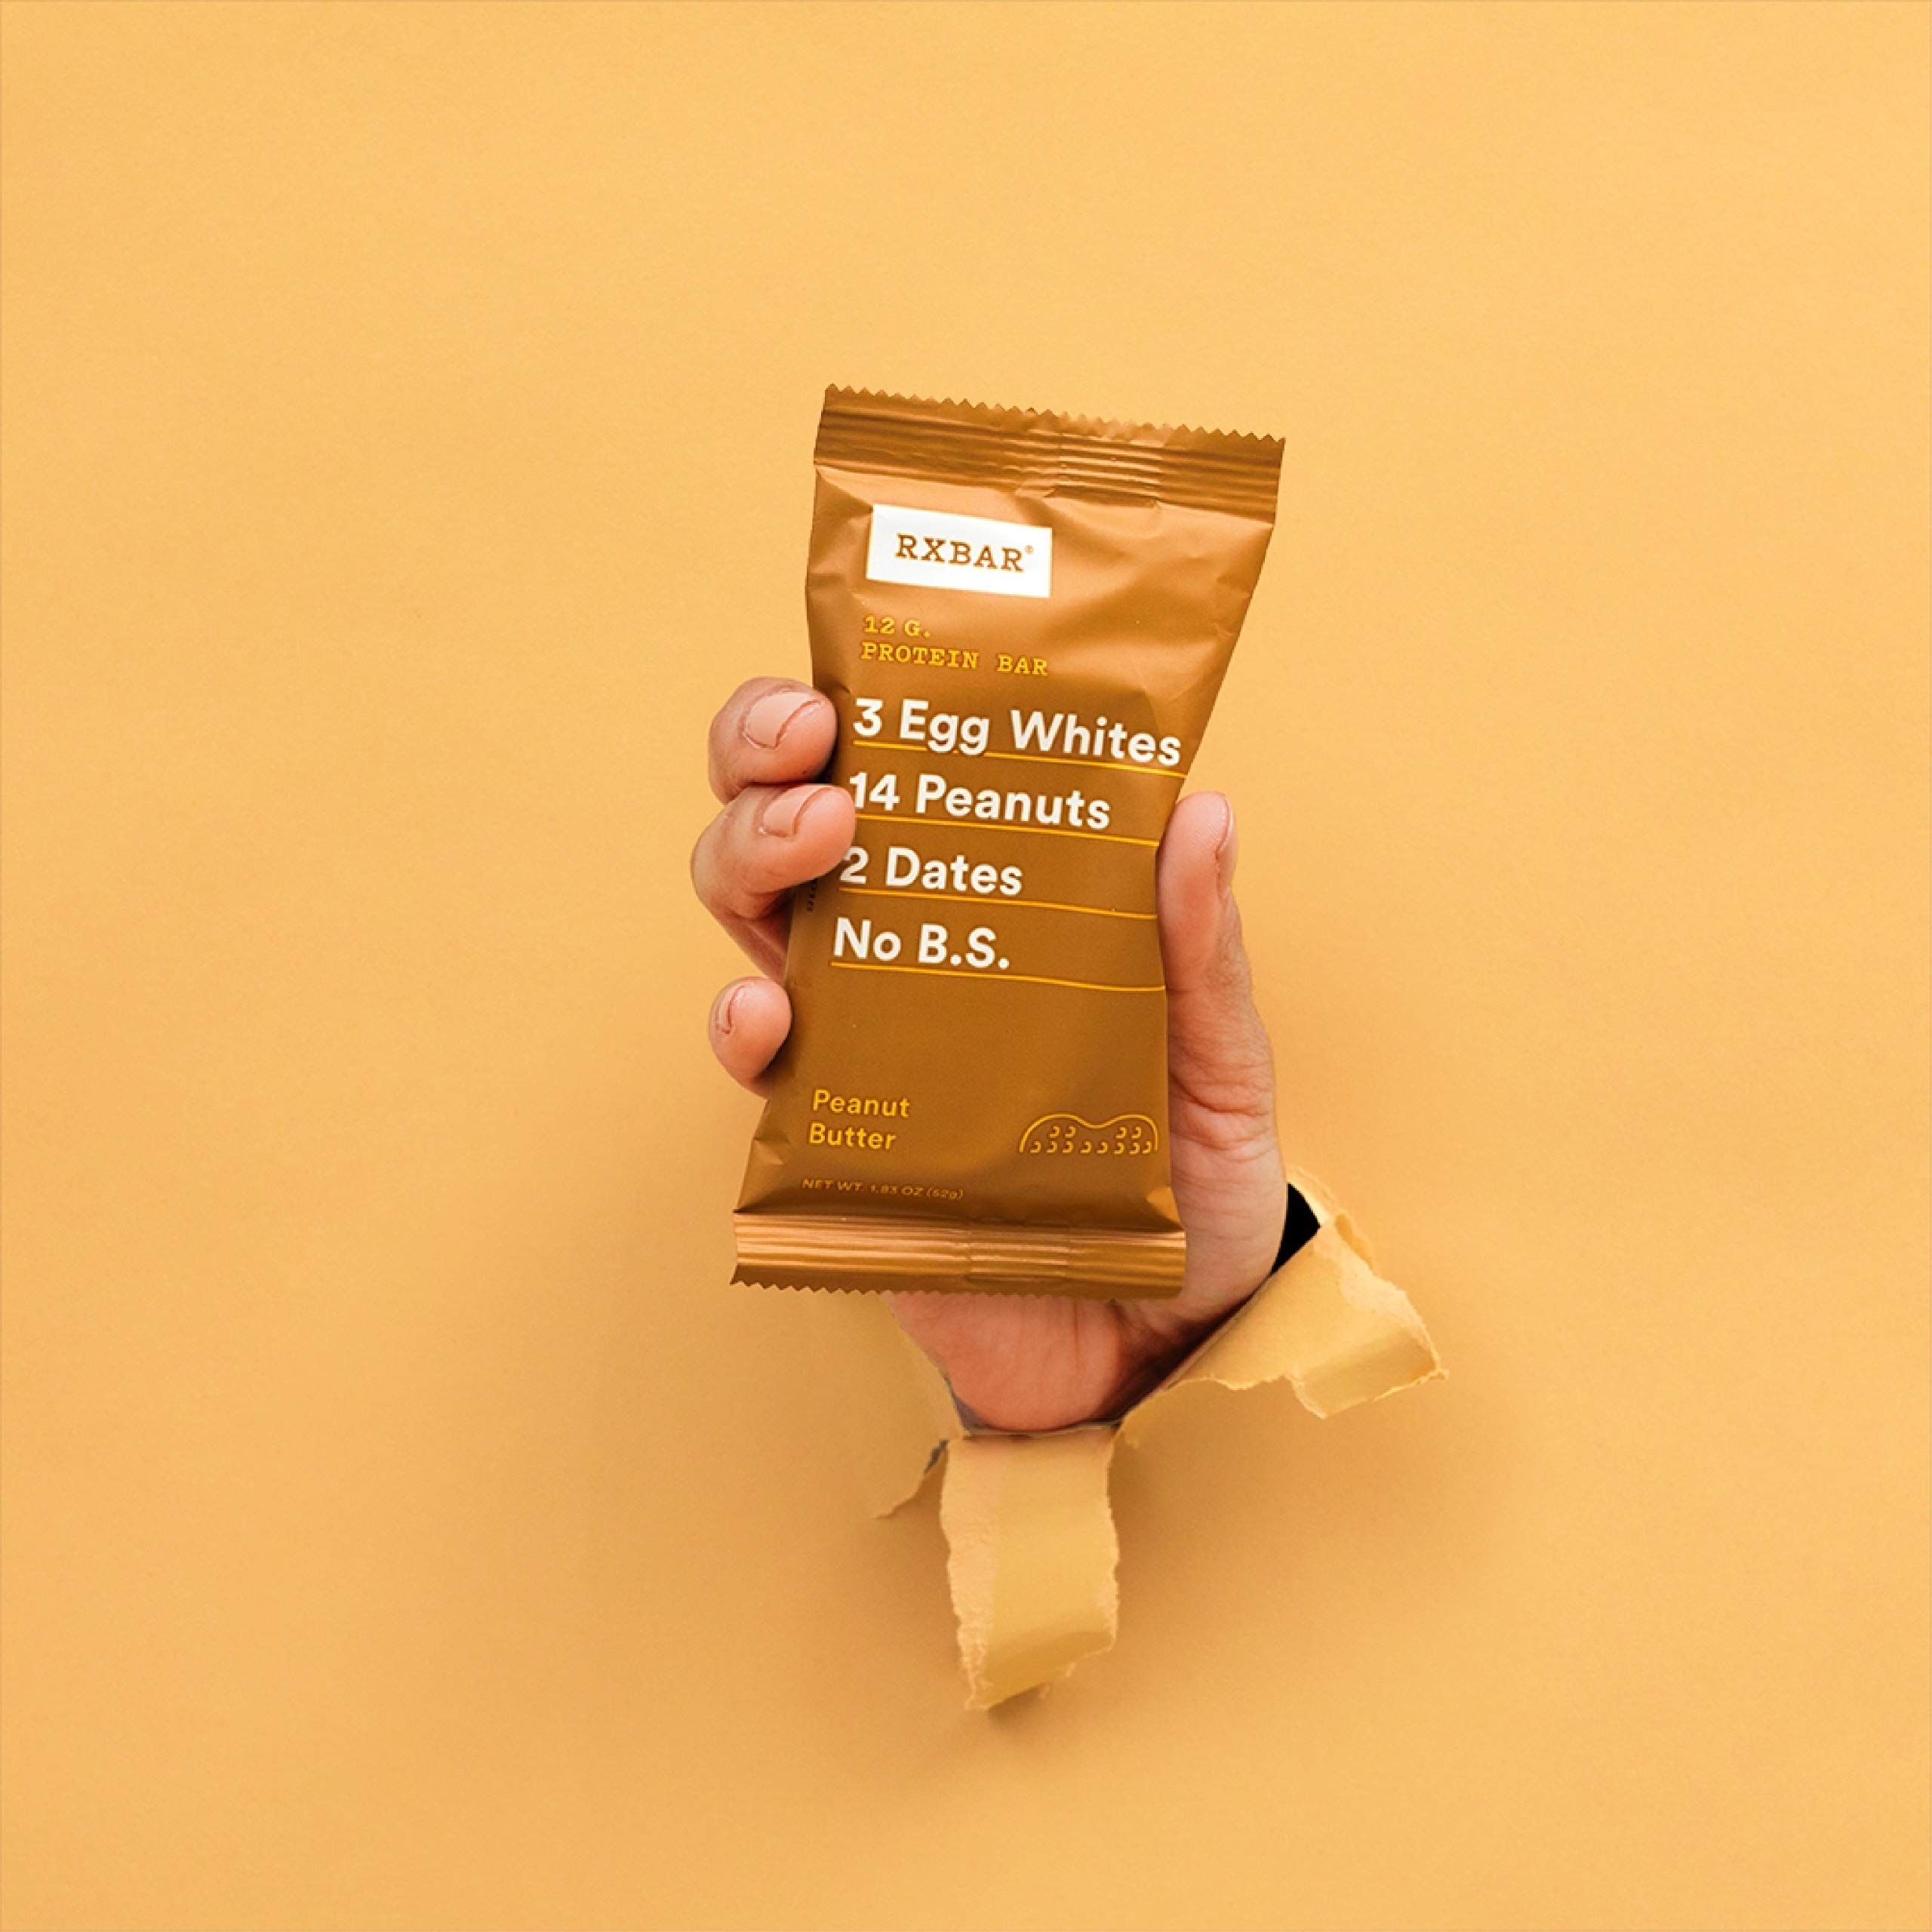 RXBAR Whole Food Protein Bar, Peanut Butter, 1.83 Ounce (Pack of 24) by RXBAR (Image #4)